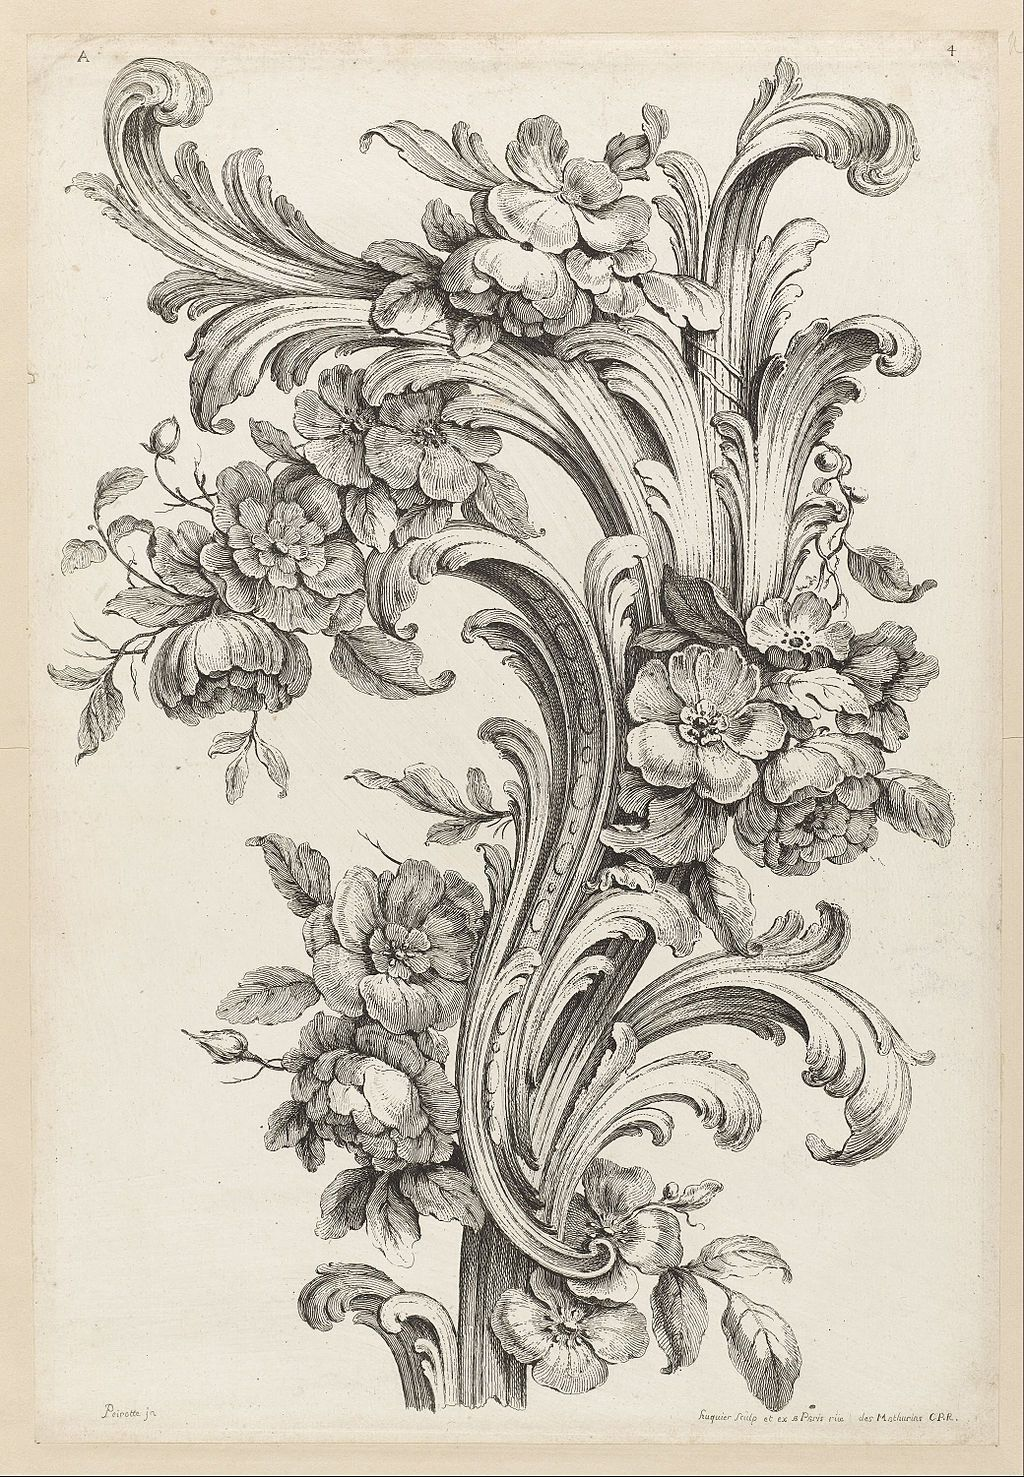 Floral and Acanthus leaf design (1740) by Alexis Peyrotte